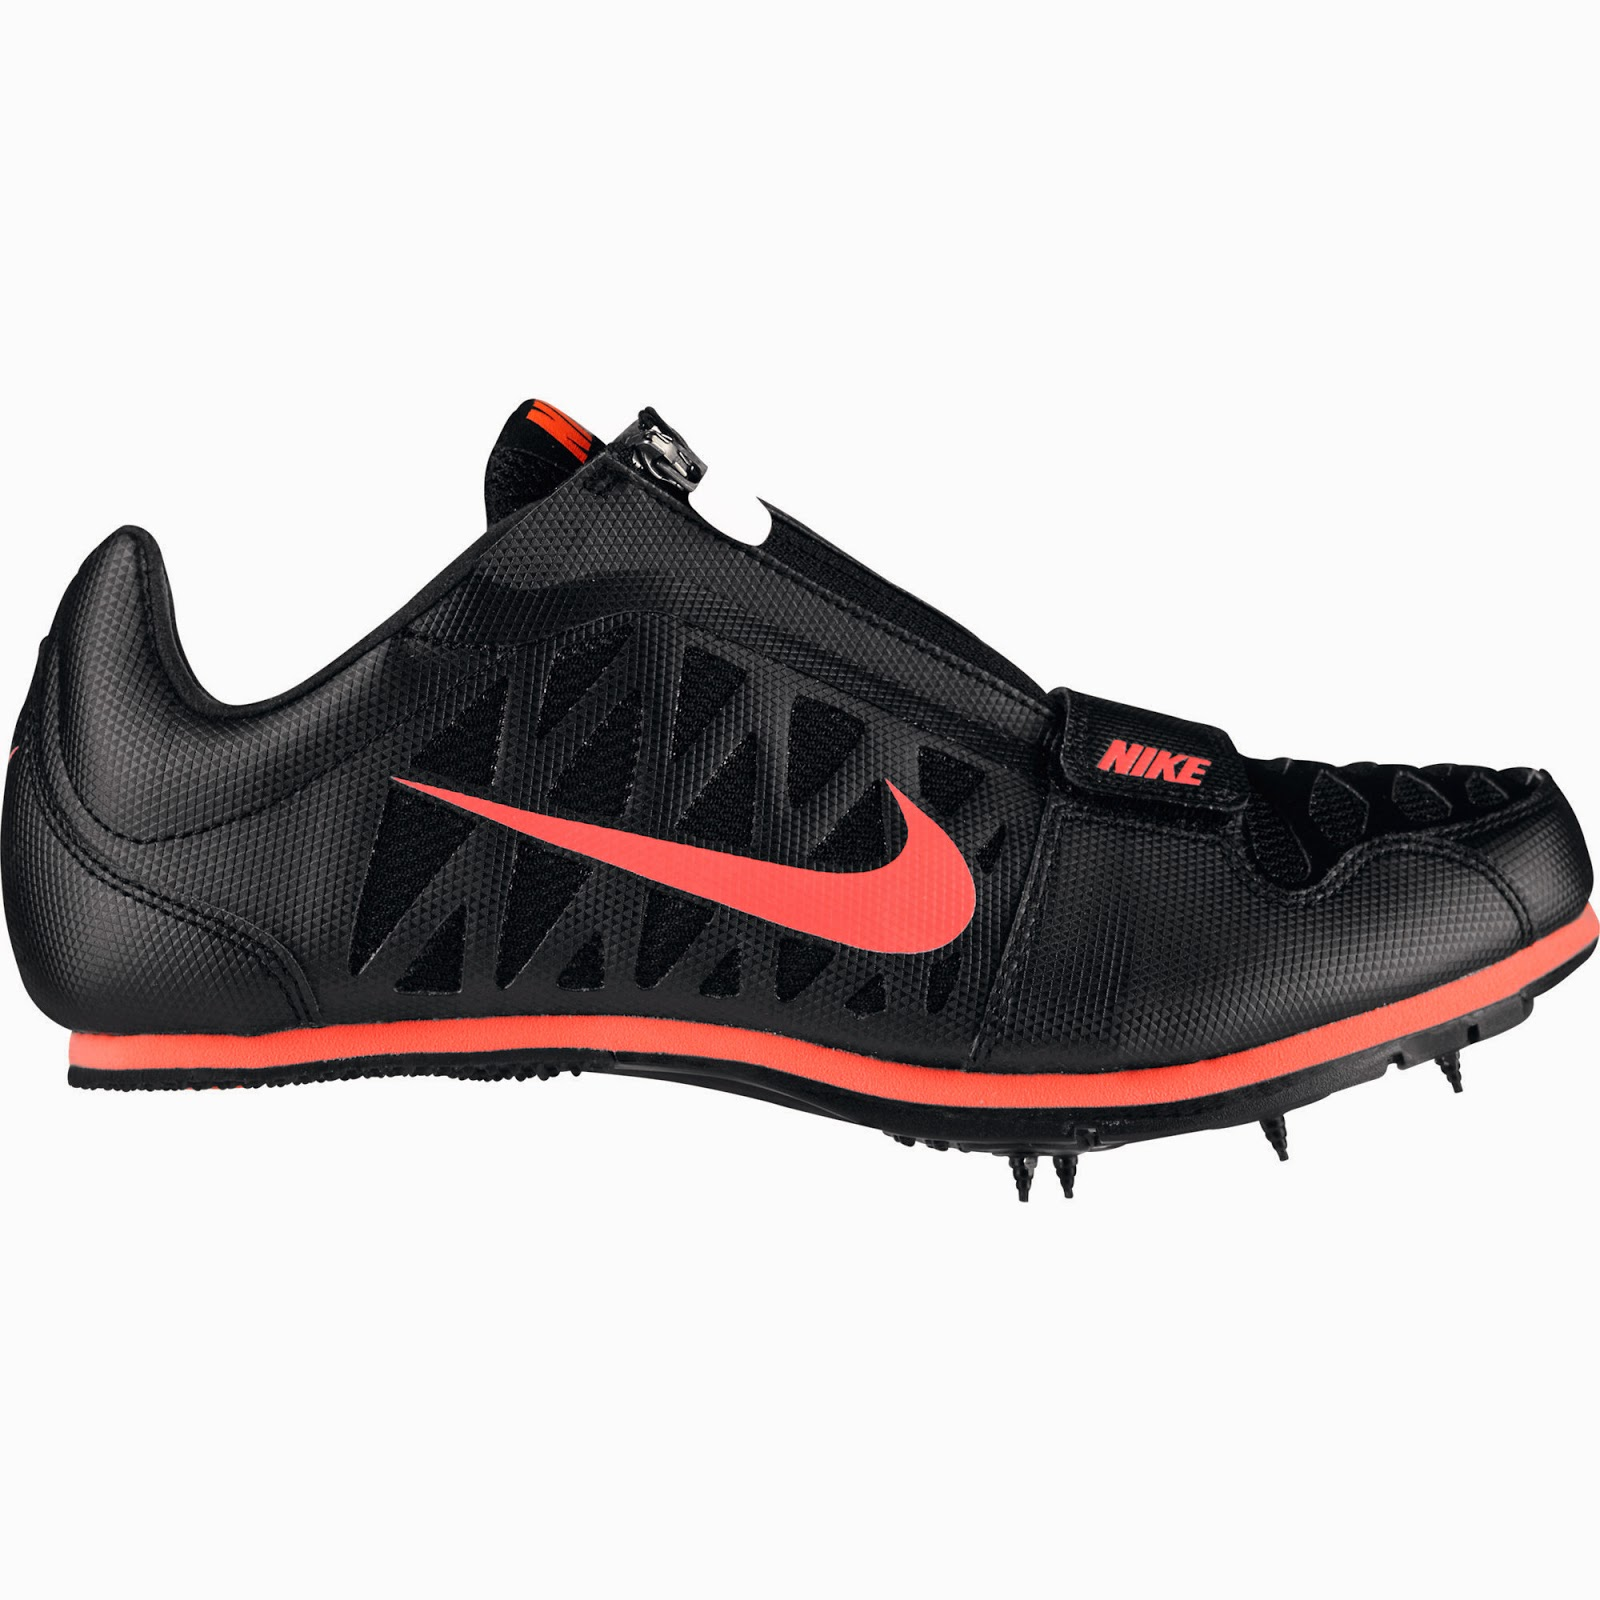 Nike Track and Field Spikes and Shoes 2014 | The Running ...